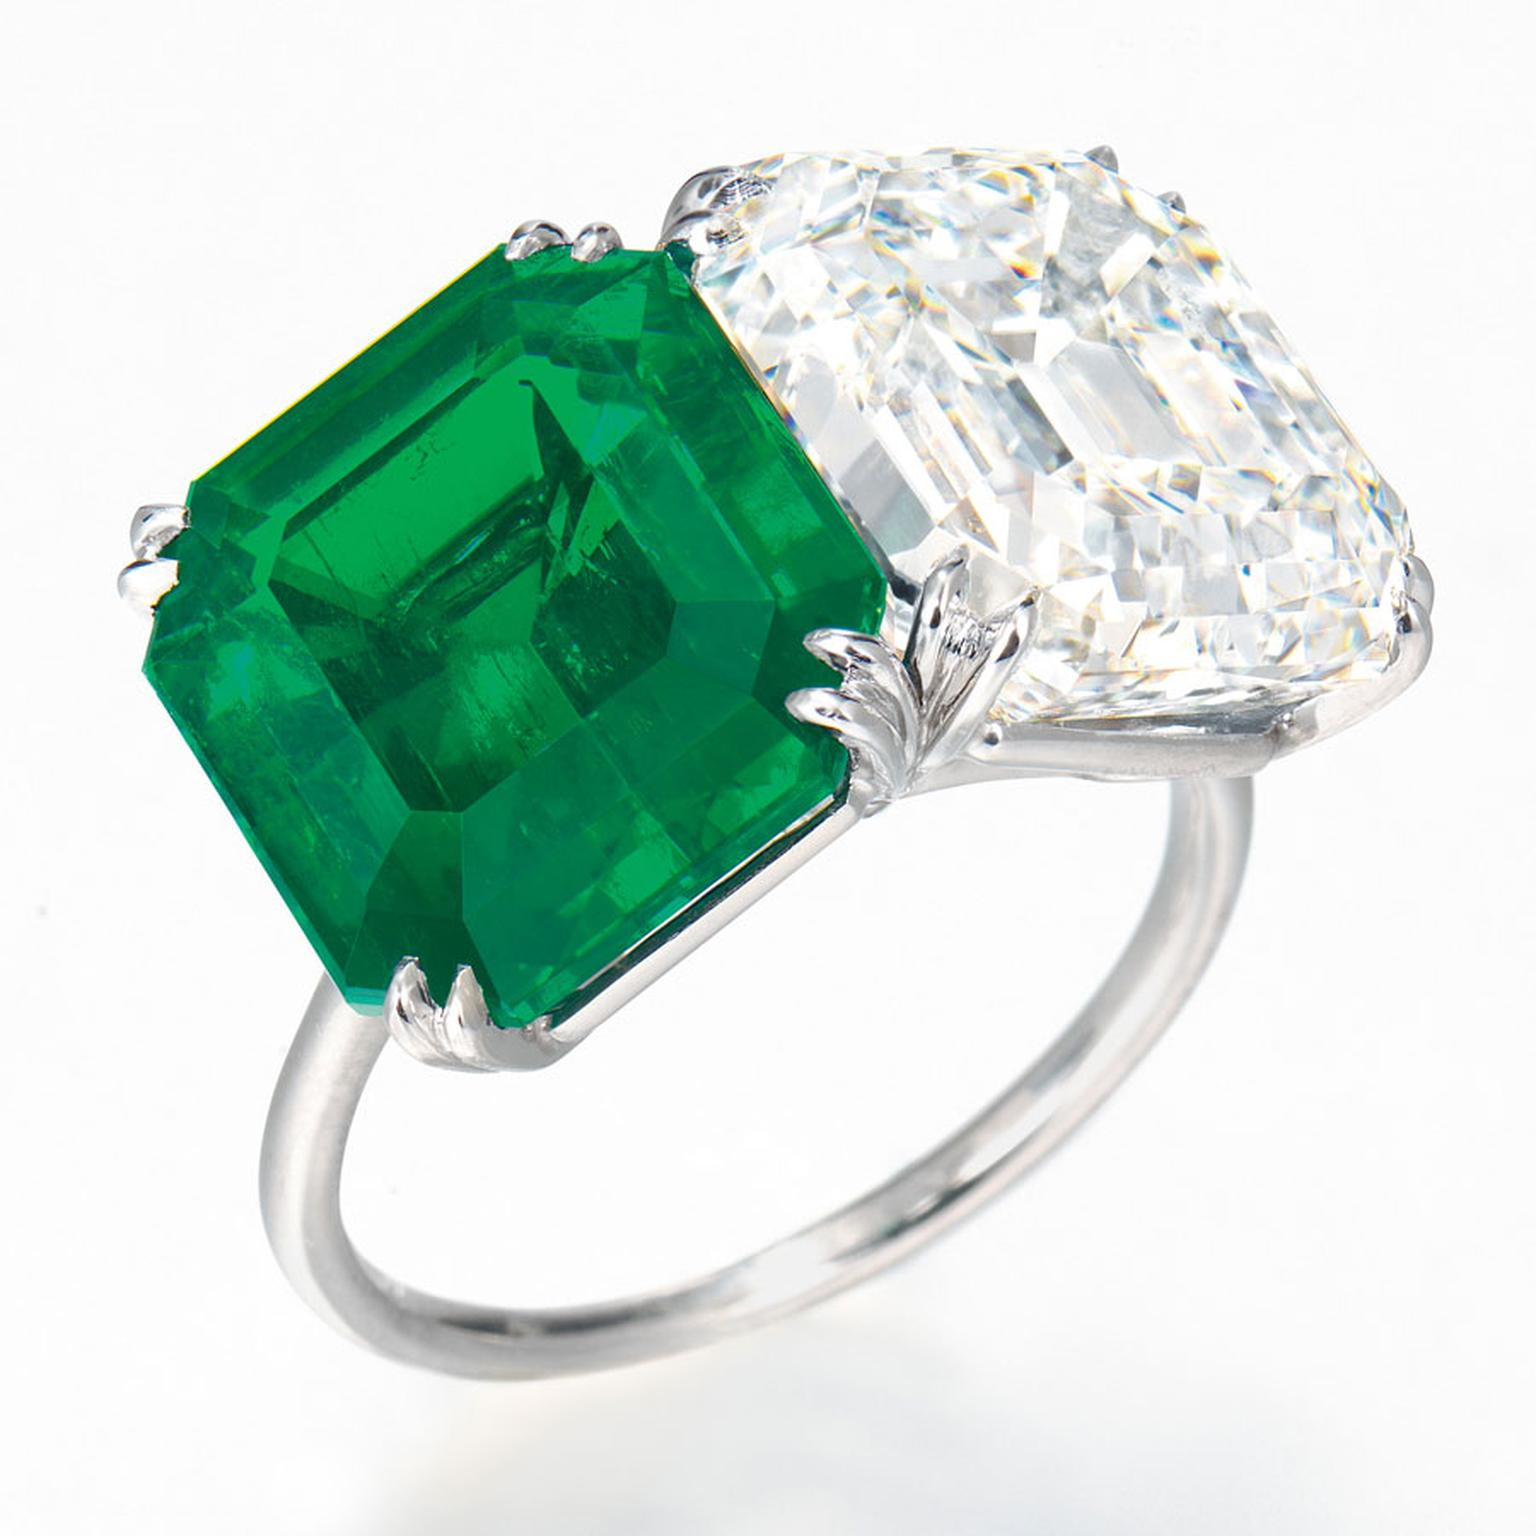 Christies-Emerald-ring.jpg